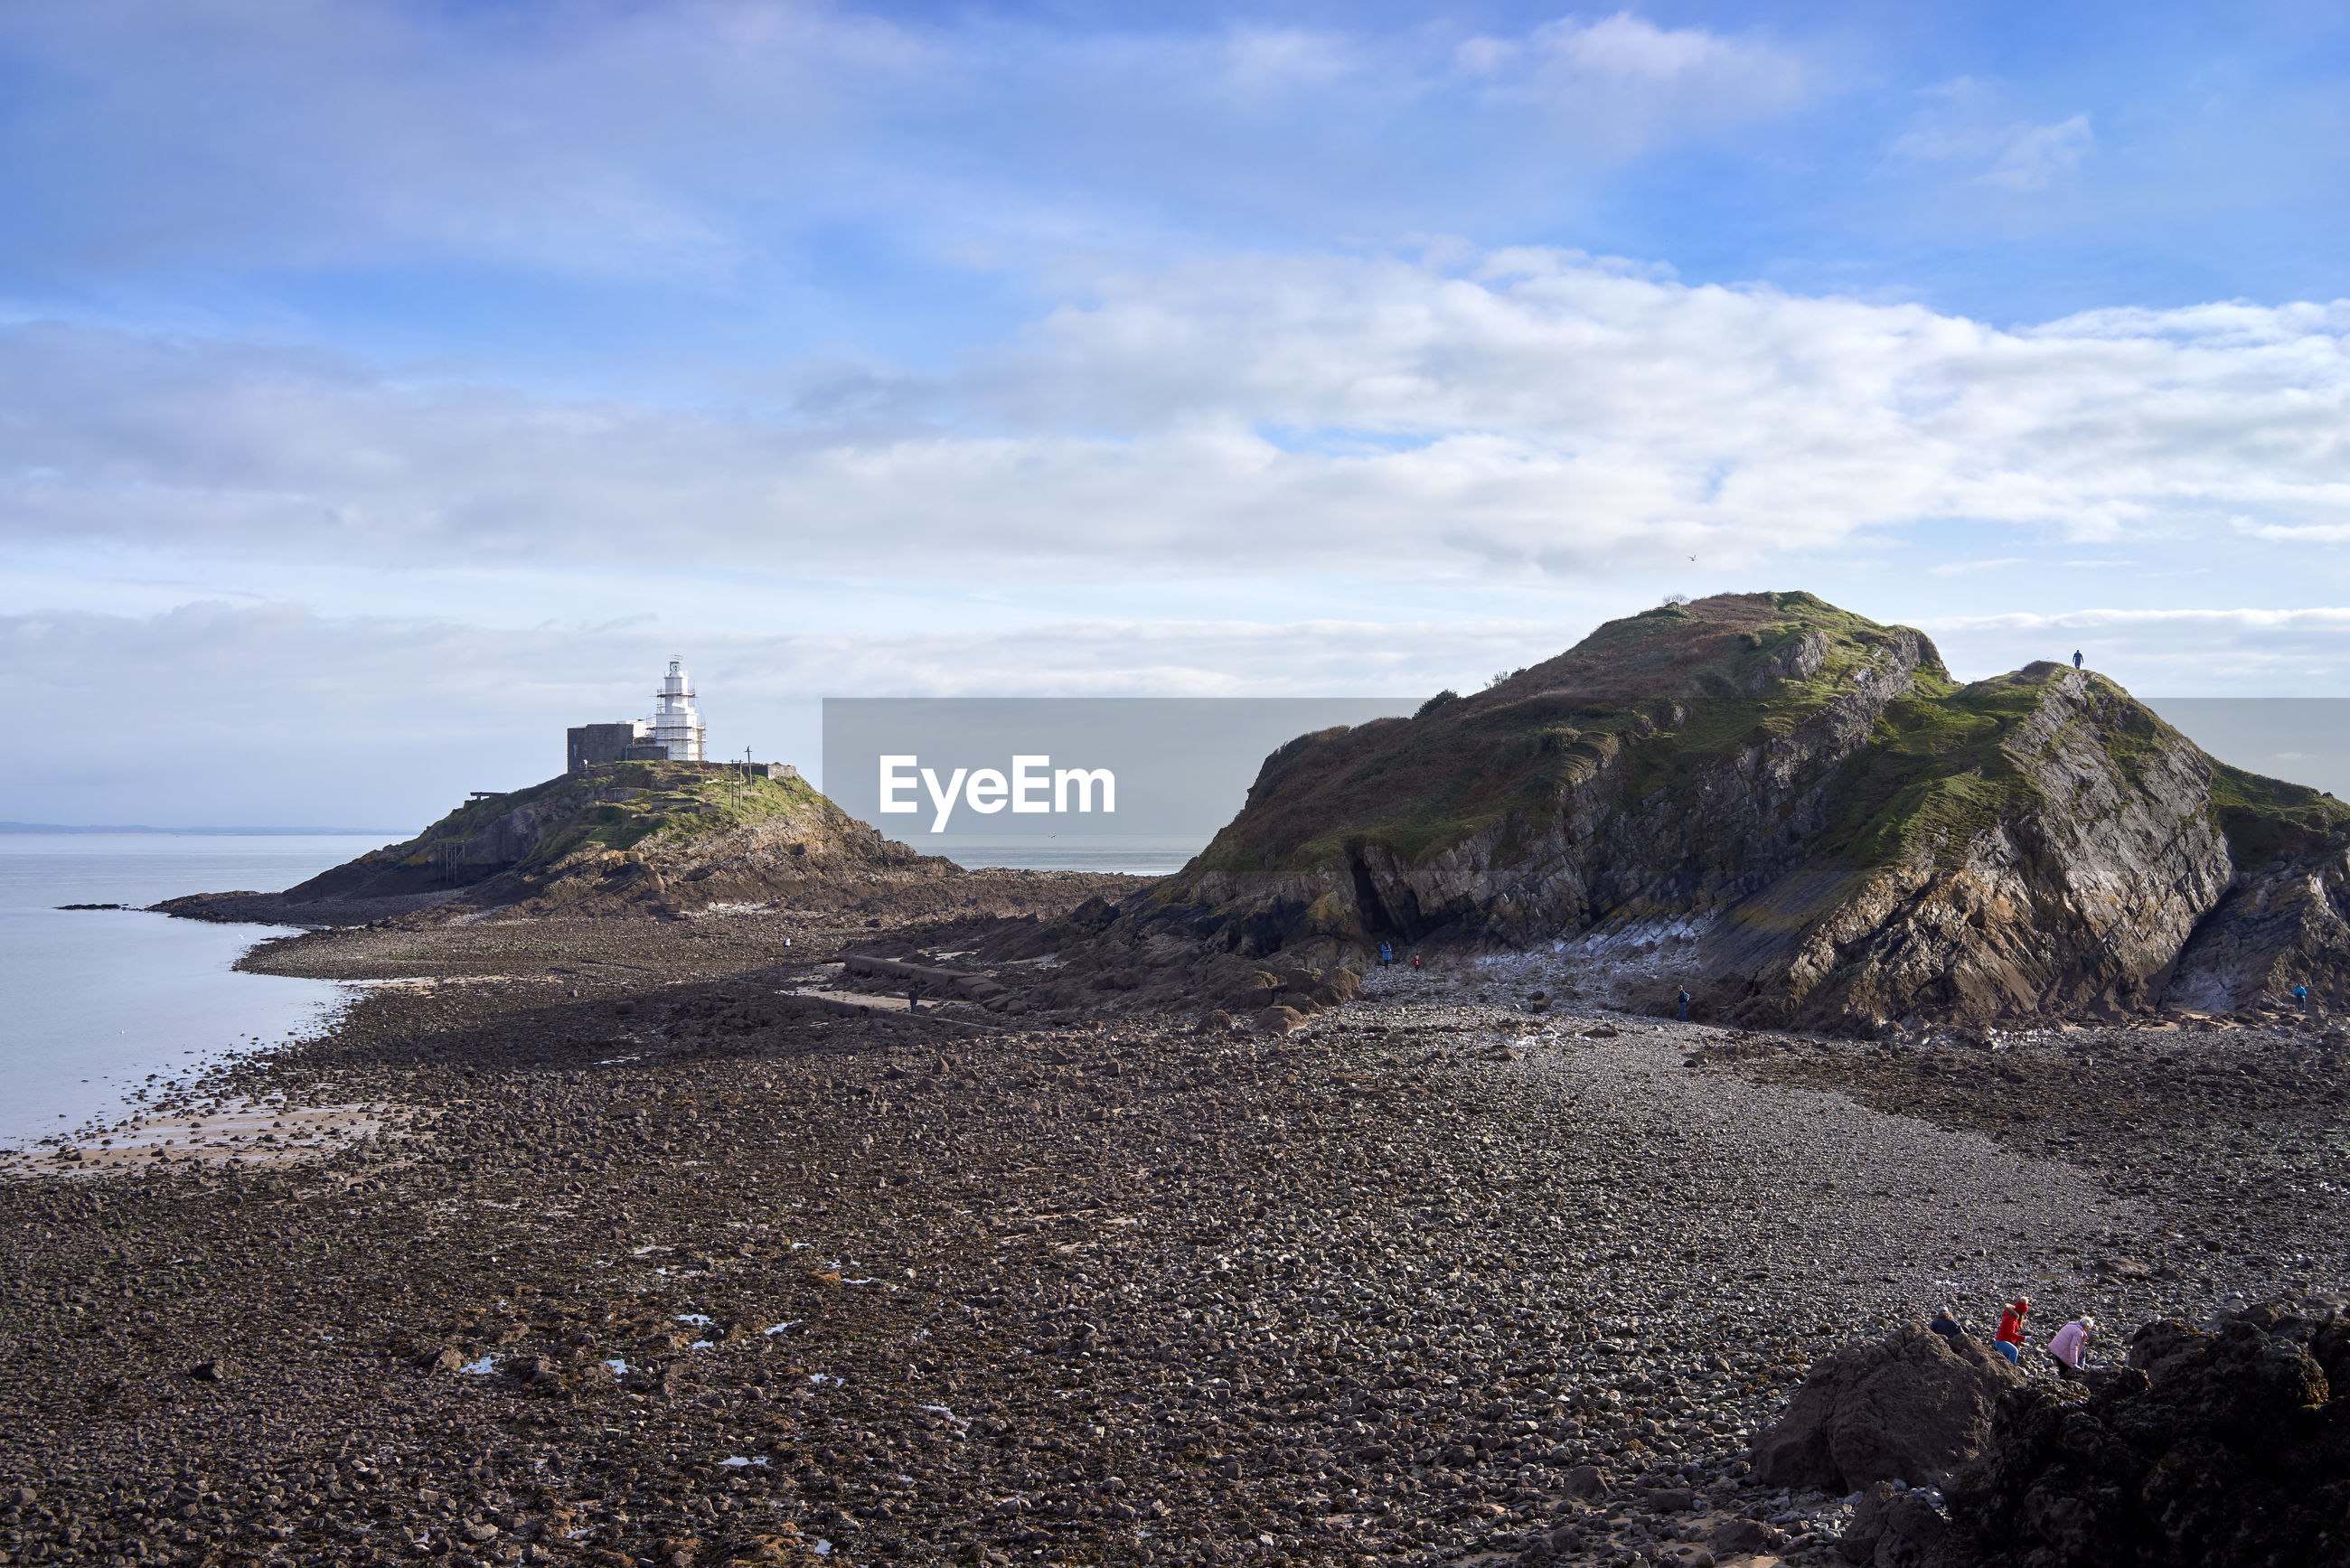 View of rock formation on beach against sky